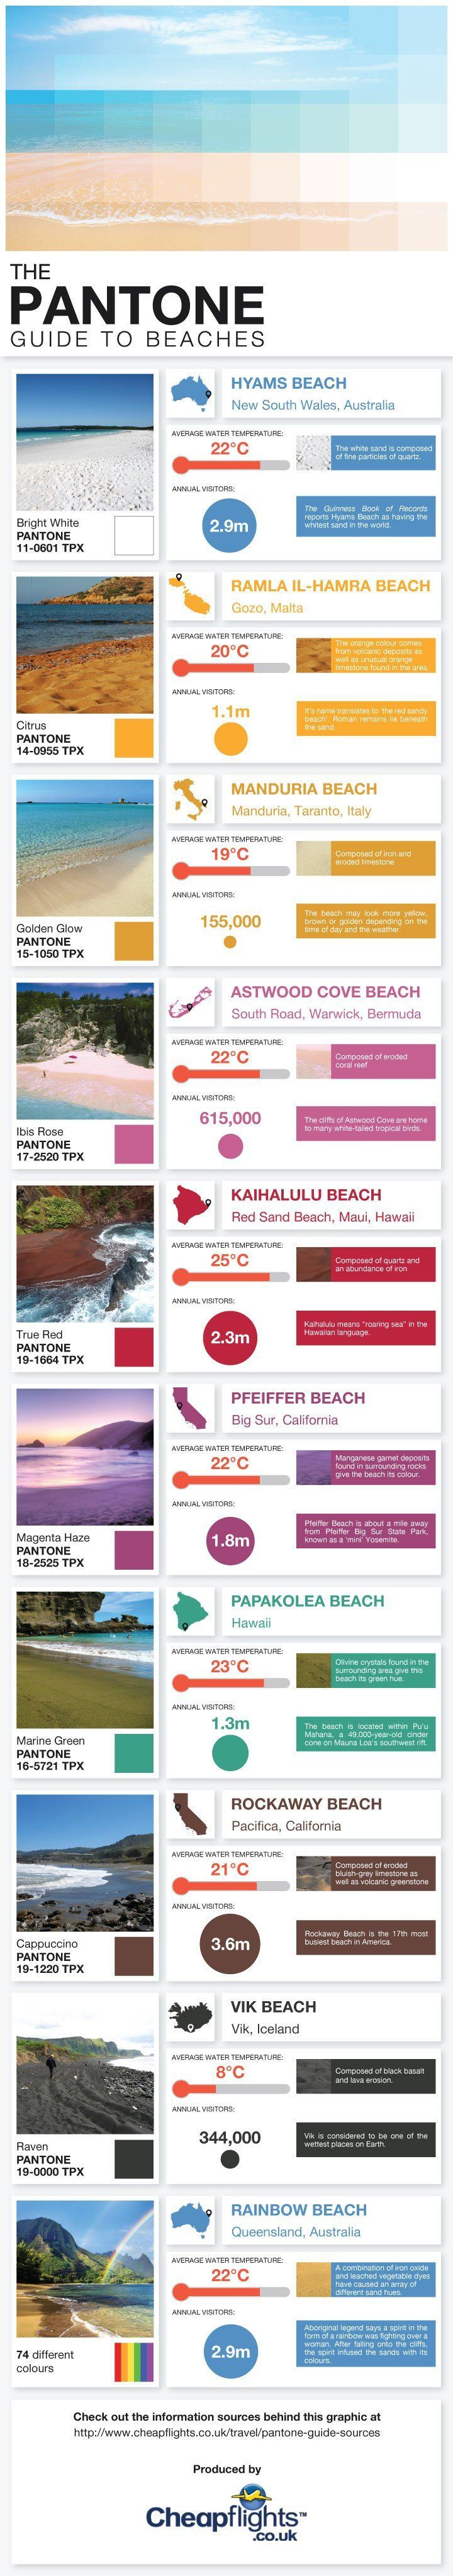 Pantone Guide To Beaches